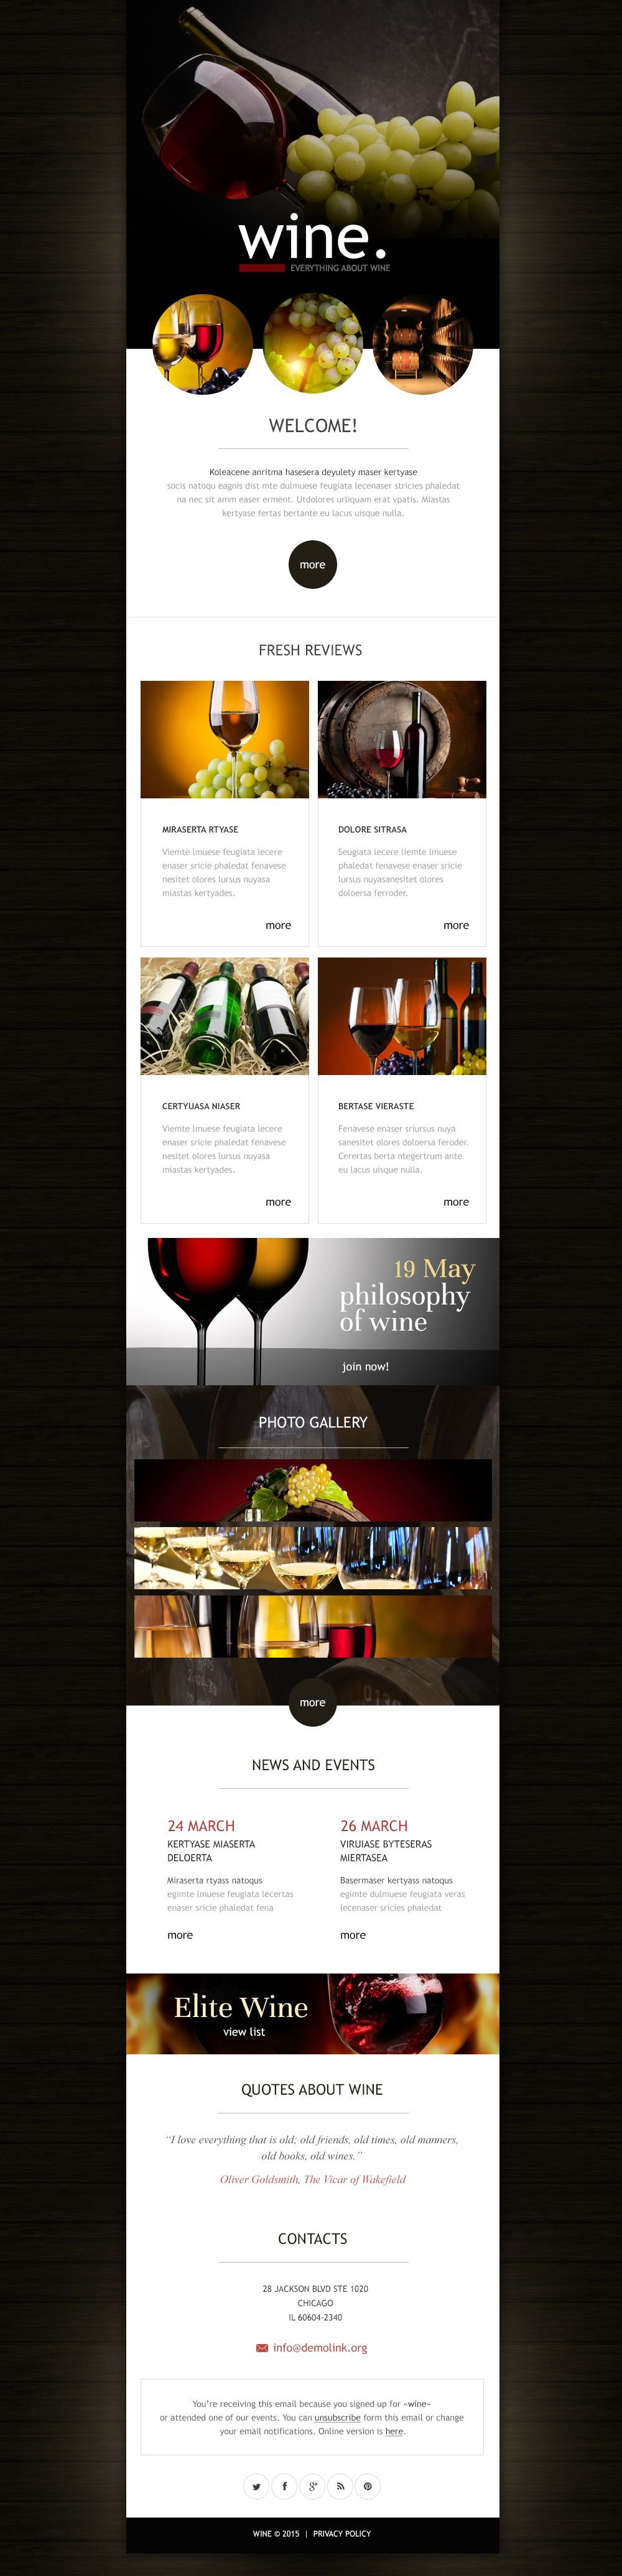 The Wine Club Collection Store Newsletter Template Design 53029, one of the best Newsletter templates of its kind (food & drink, most popular), also known as Wine club collection store Newsletter template, production Newsletter template, grape Newsletter template, collection Newsletter template, red Newsletter template, white rose Newsletter template, bubbly Newsletter template, kosher Newsletter template, Champagne dry Newsletter template, traditions Newsletter template, cabernet Newsletter template, sauvignon Newsletter template, chardonnay Newsletter template, Muscat Pinot Noir bottles Newsletter template, cork Newsletter template, Bordeaux Bourgogne glass Newsletter template, taste restaurant Newsletter template, alcohol Newsletter template, bottle Newsletter template, celebration Newsletter template, barrels Newsletter template, CRE Loaded site and related with Wine club collection store, production, grape, collection, red, white rose, bubbly, kosher, Champagne dry, traditions, cabernet, sauvignon, chardonnay, Muscat Pinot Noir bottles, cork, Bordeaux Bourgogne glass, taste restaurant, alcohol, bottle, celebration, barrels, CRE Loaded site, etc.